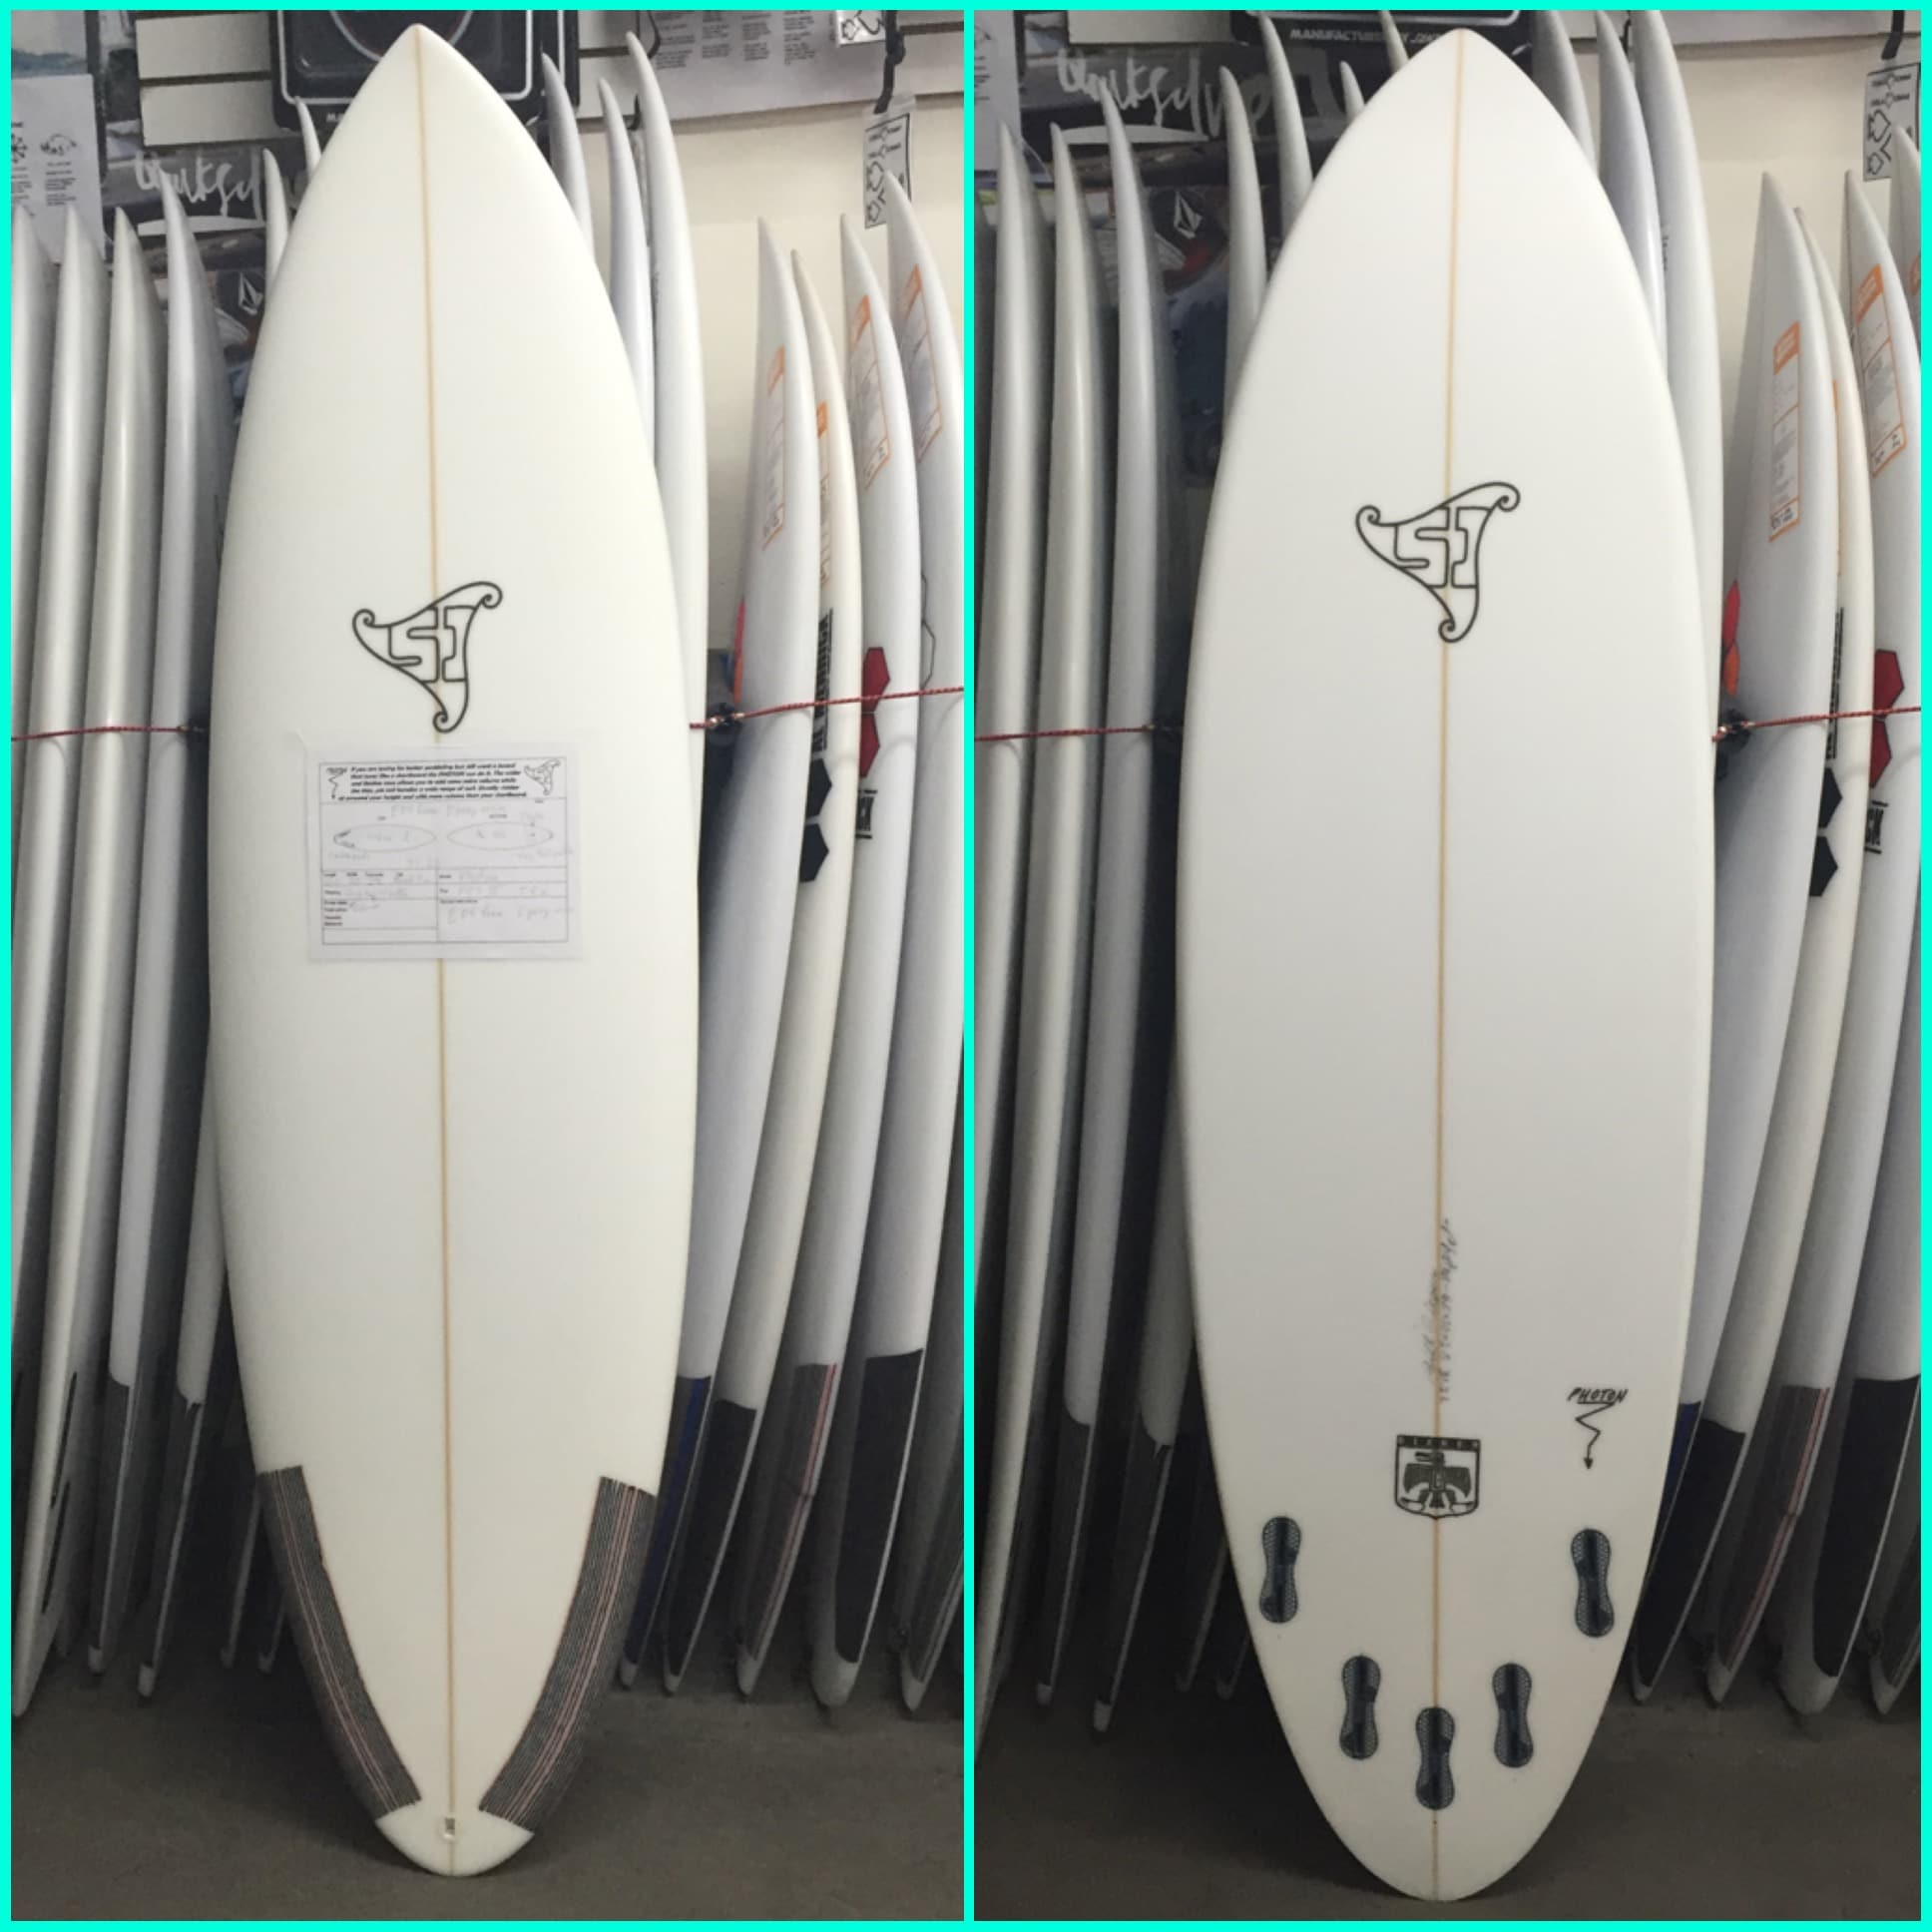 """Summer Jet surfboards are now available in epoxy with EPS foam, making for a light weight and strong board that is ideal for generating speed in small waves! The board pictured here is the Photon model and it is 6'0"""" x 20"""" x 2 1/2"""" 31.2L"""